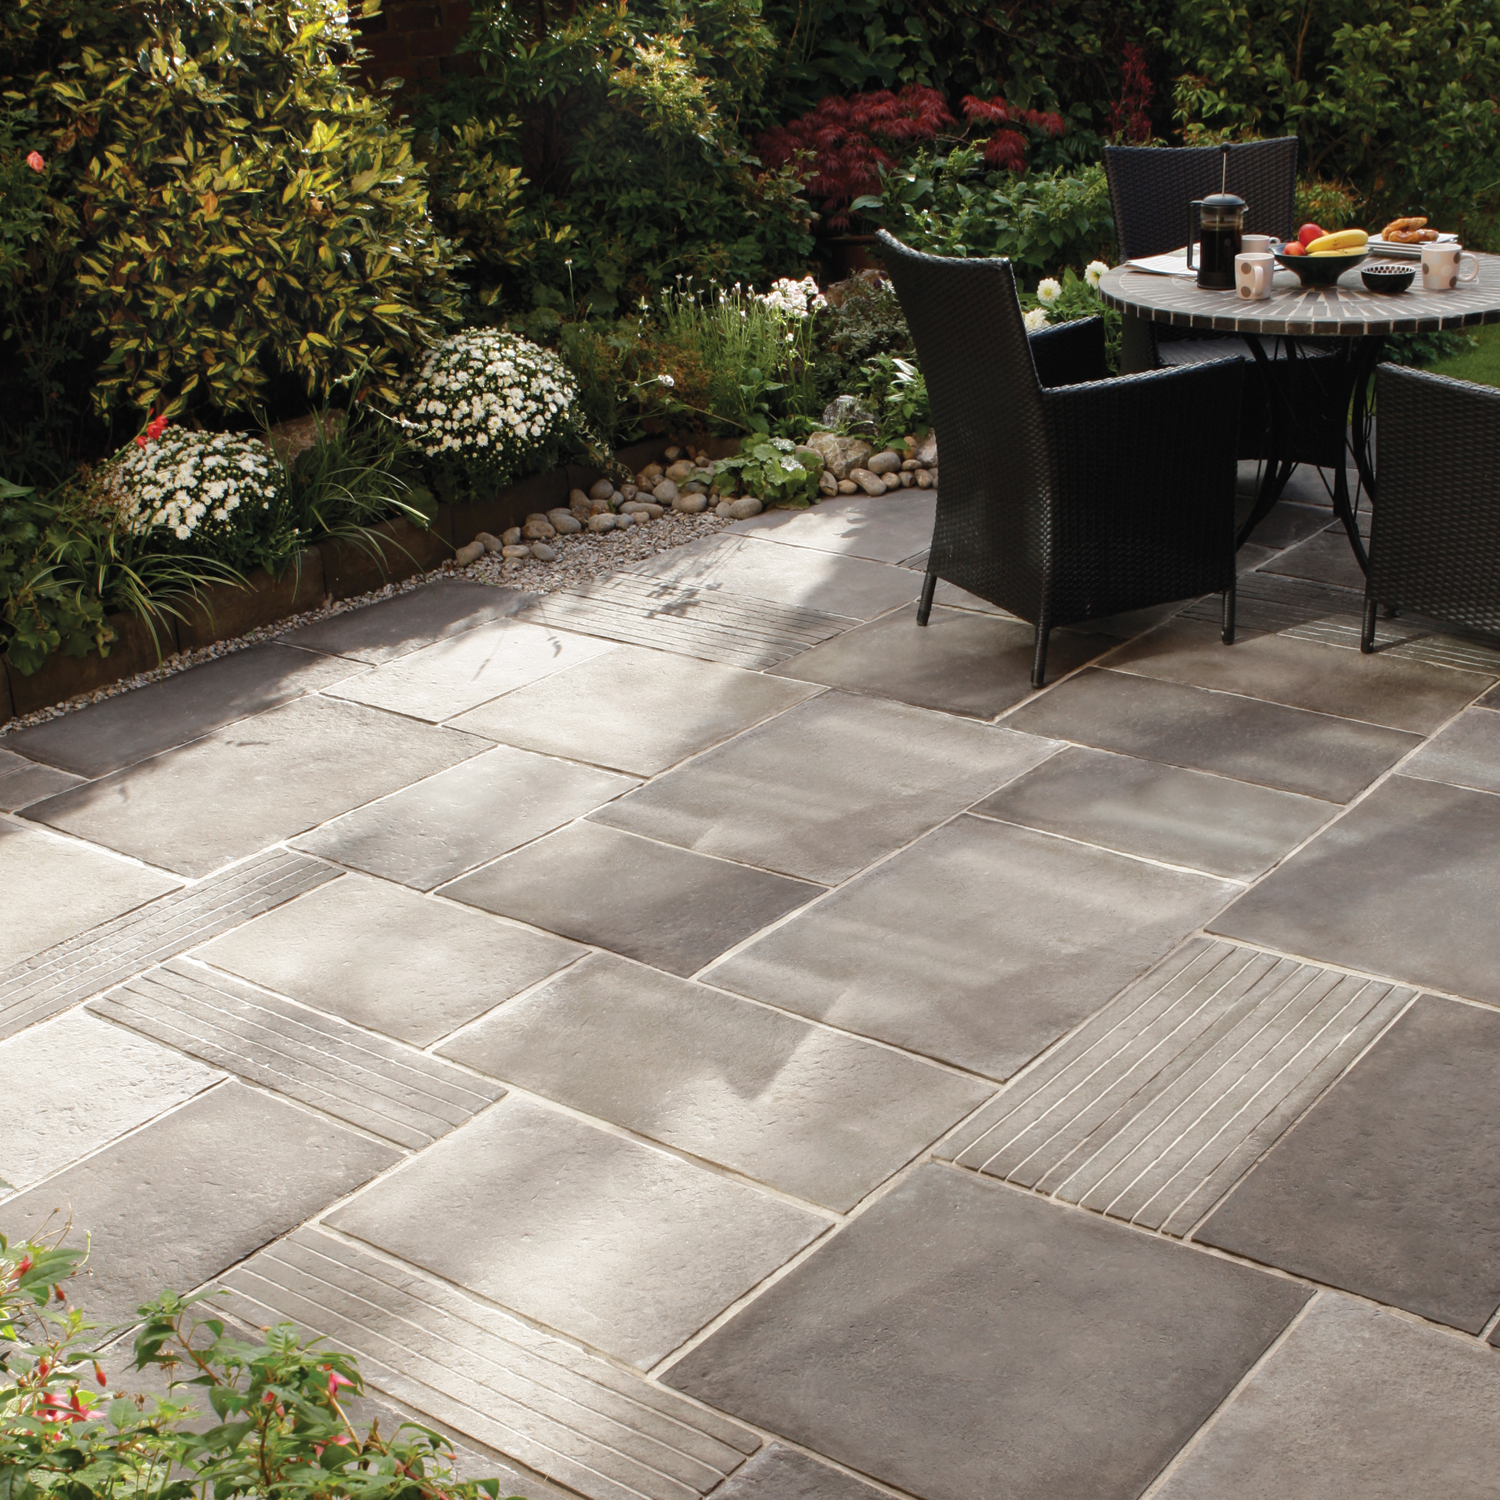 Adding Pavers To Concrete Patio Decorate Contemporary Garden Paving Ideas Interior Exterior Doors